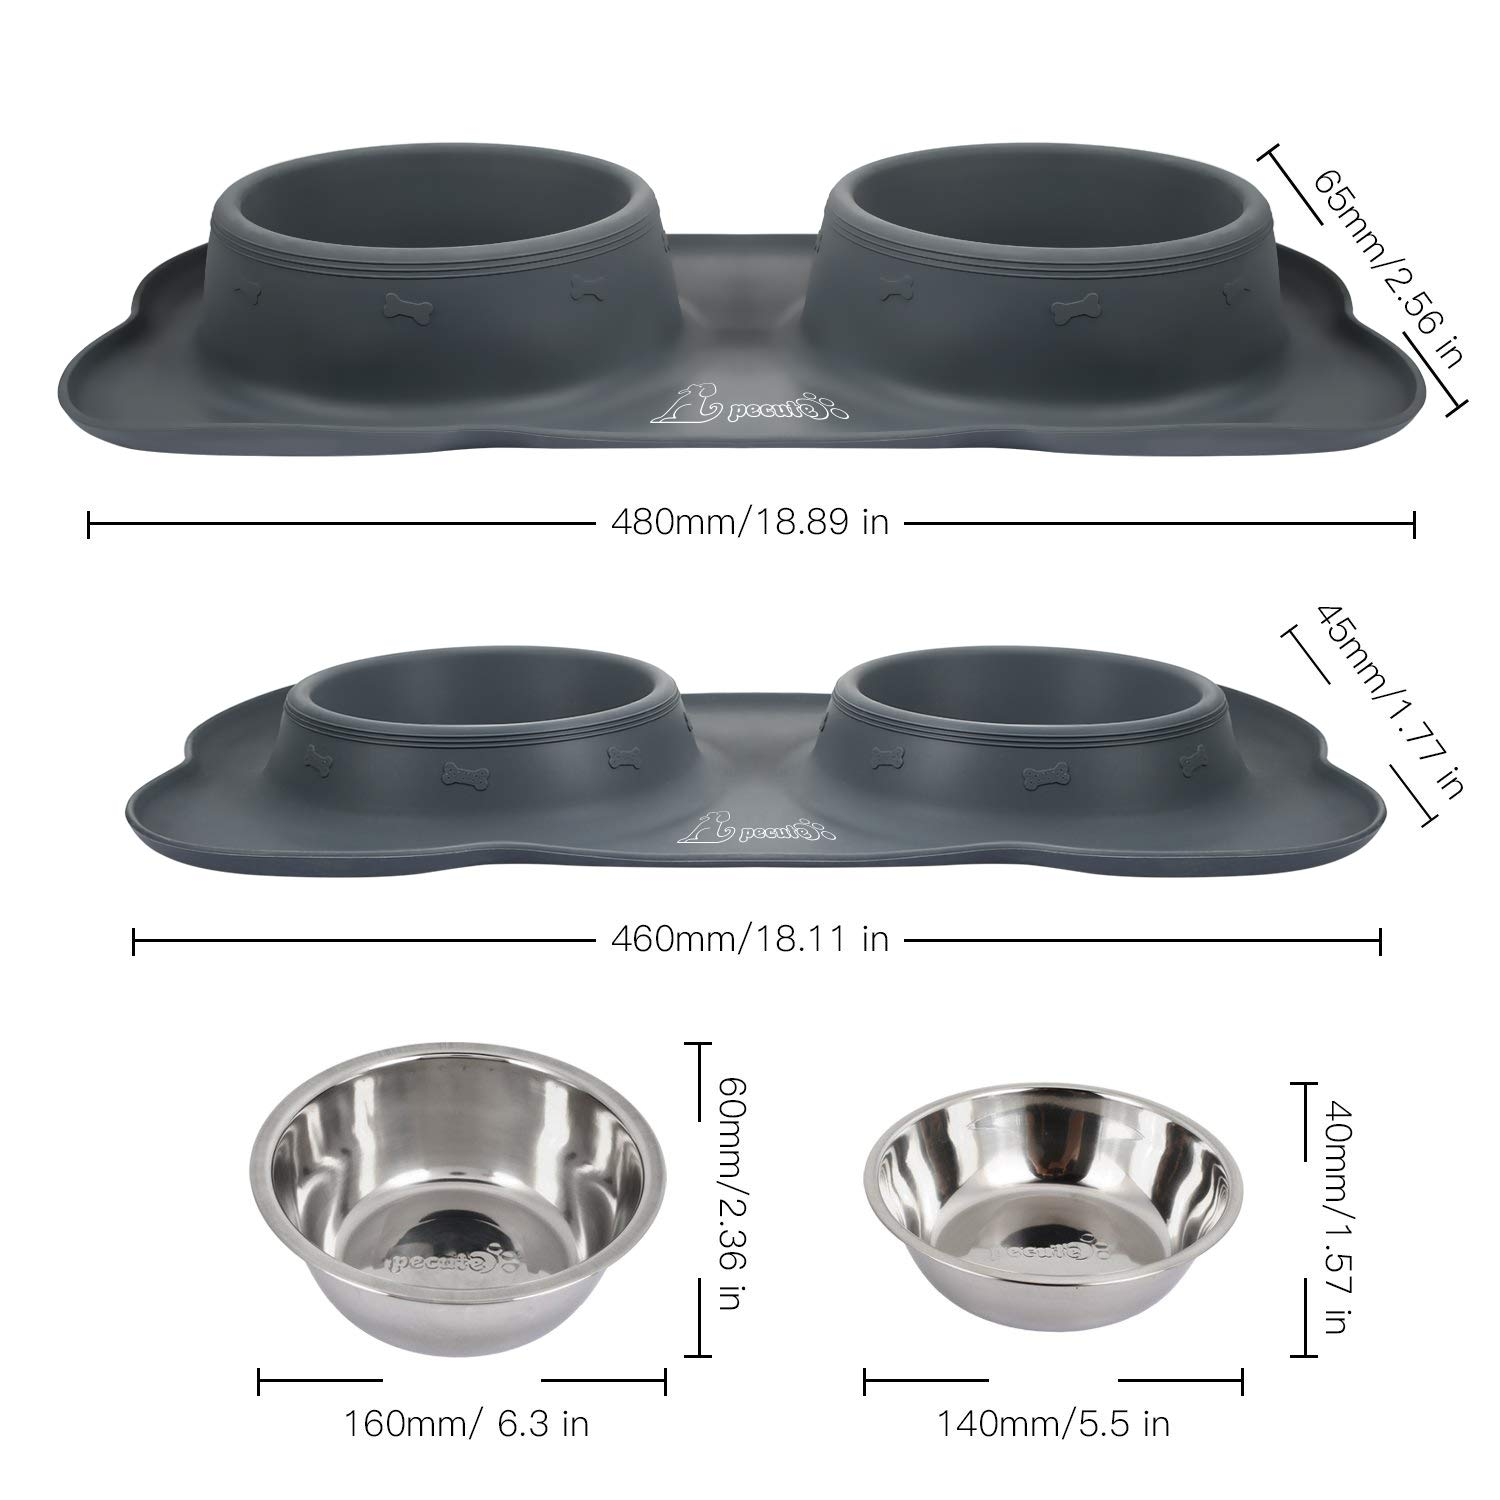 Pecute Dog Bowls Non Slip, Stainless Steel Double Bowls Set with Non-Spill Silicone Mats Tray for Cats Puppies Small Dogs Water Food Feeding (12oz Each Bowl, Grey)